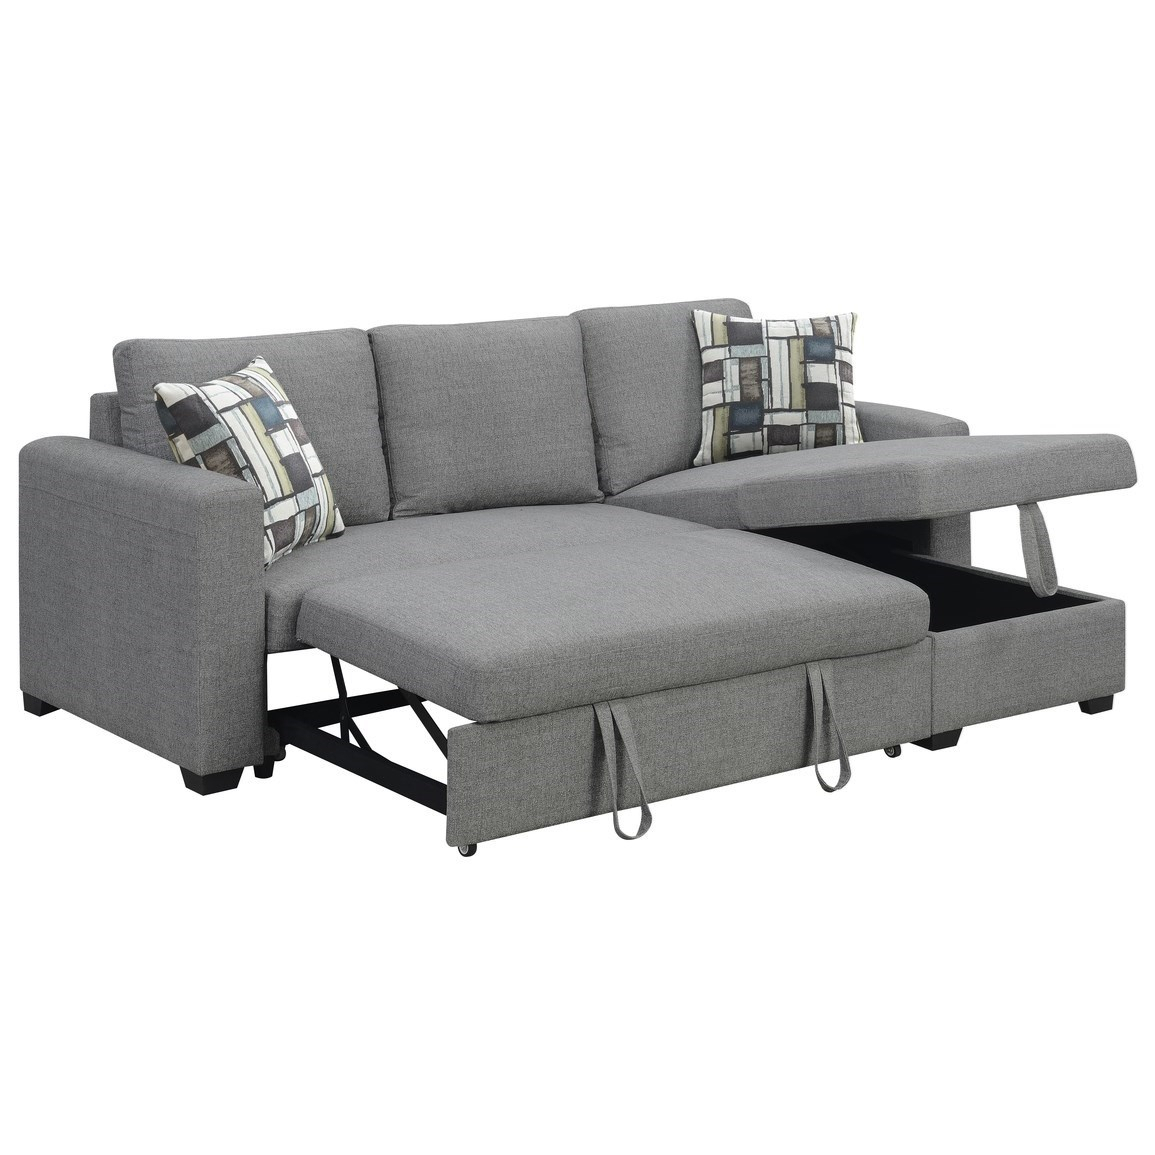 Langley 2 Piece Sectional With Reversible Chaise   Sadler Within Palisades Reversible Small Space Sectional Sofas With Storage (View 9 of 15)